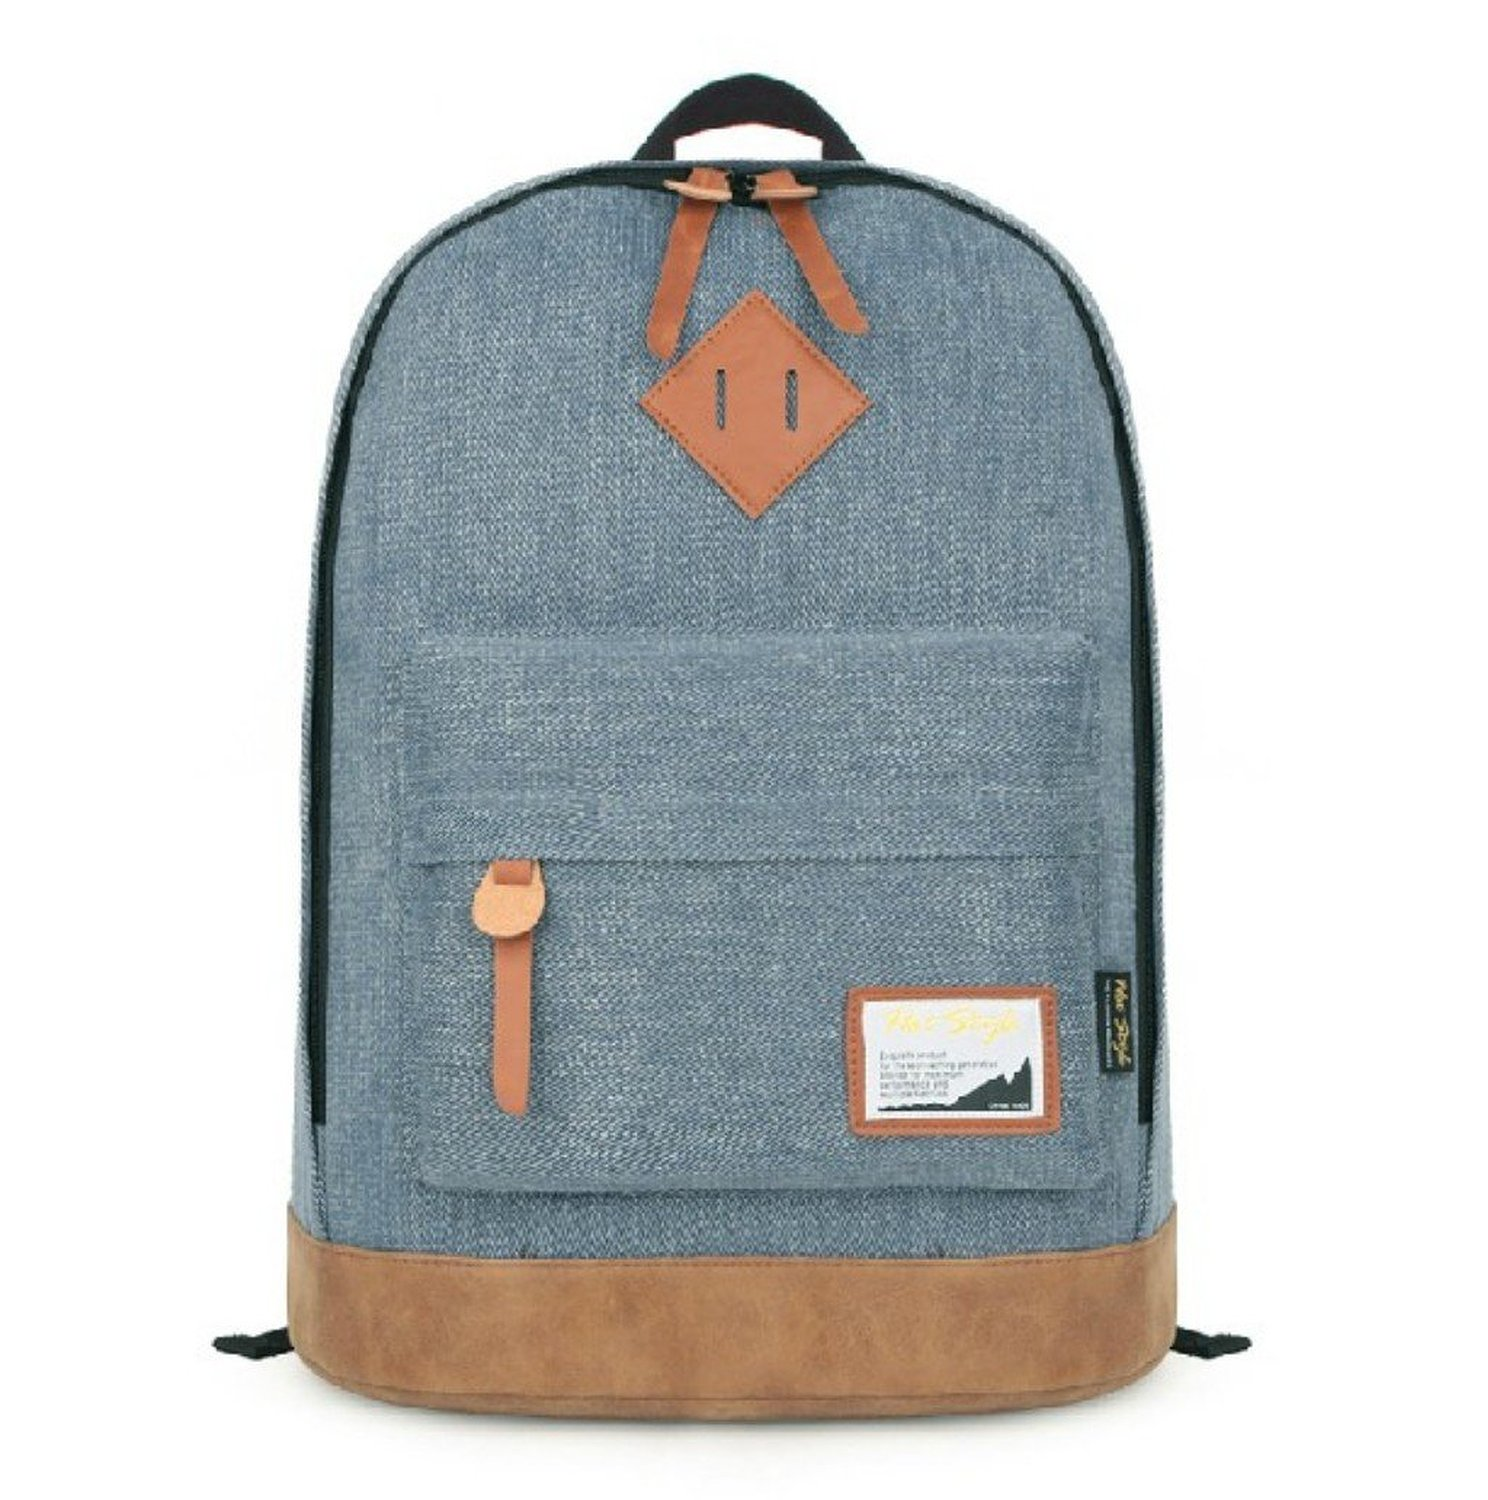 Cute Backpacks For College uVEN67pG